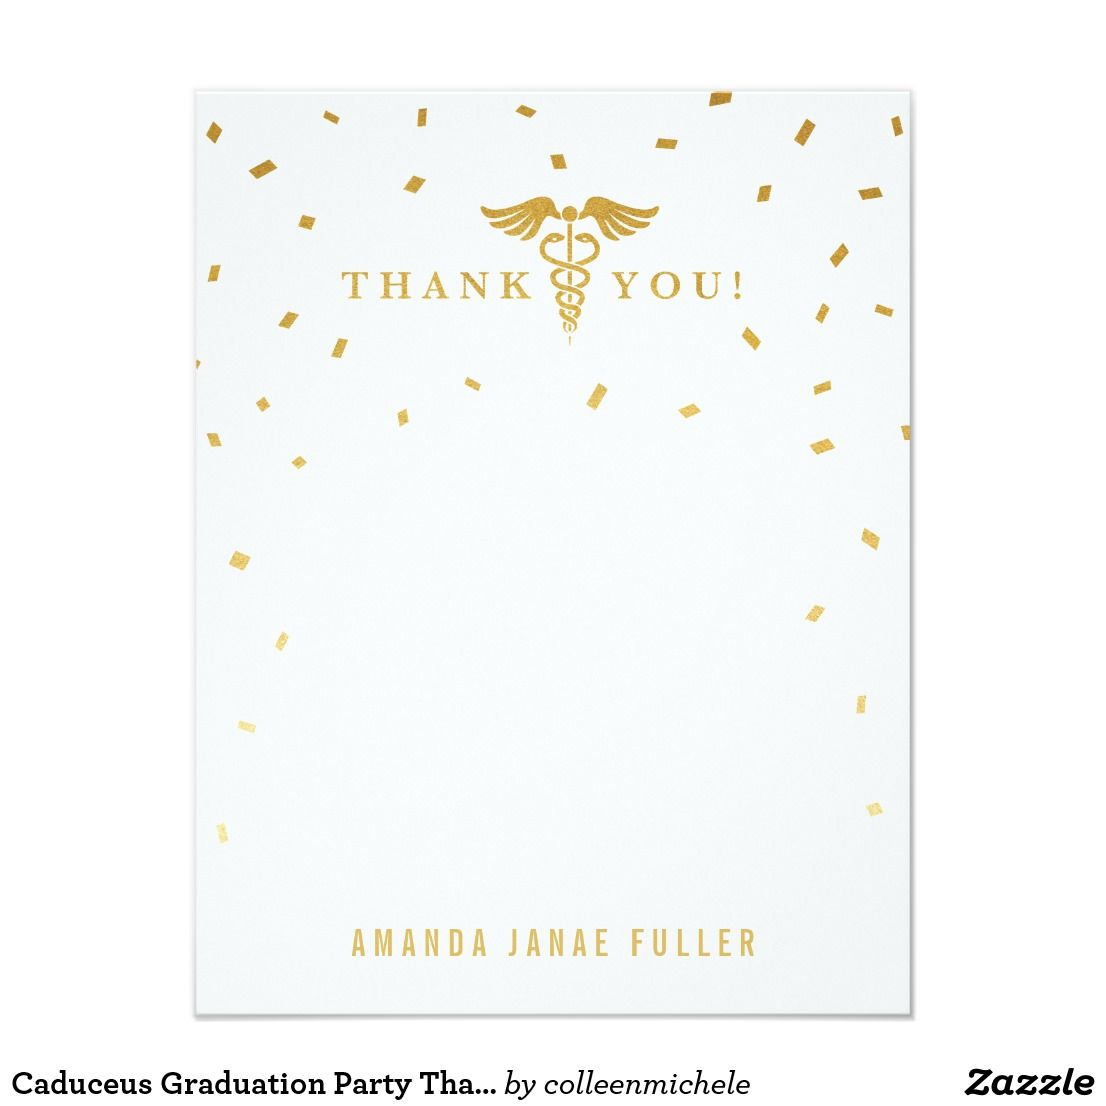 Caduceus Graduation Party Thank You Cards Zazzle Com Graduation Party Invitations Templates Graduation Party Invitations Printable Party Invite Template